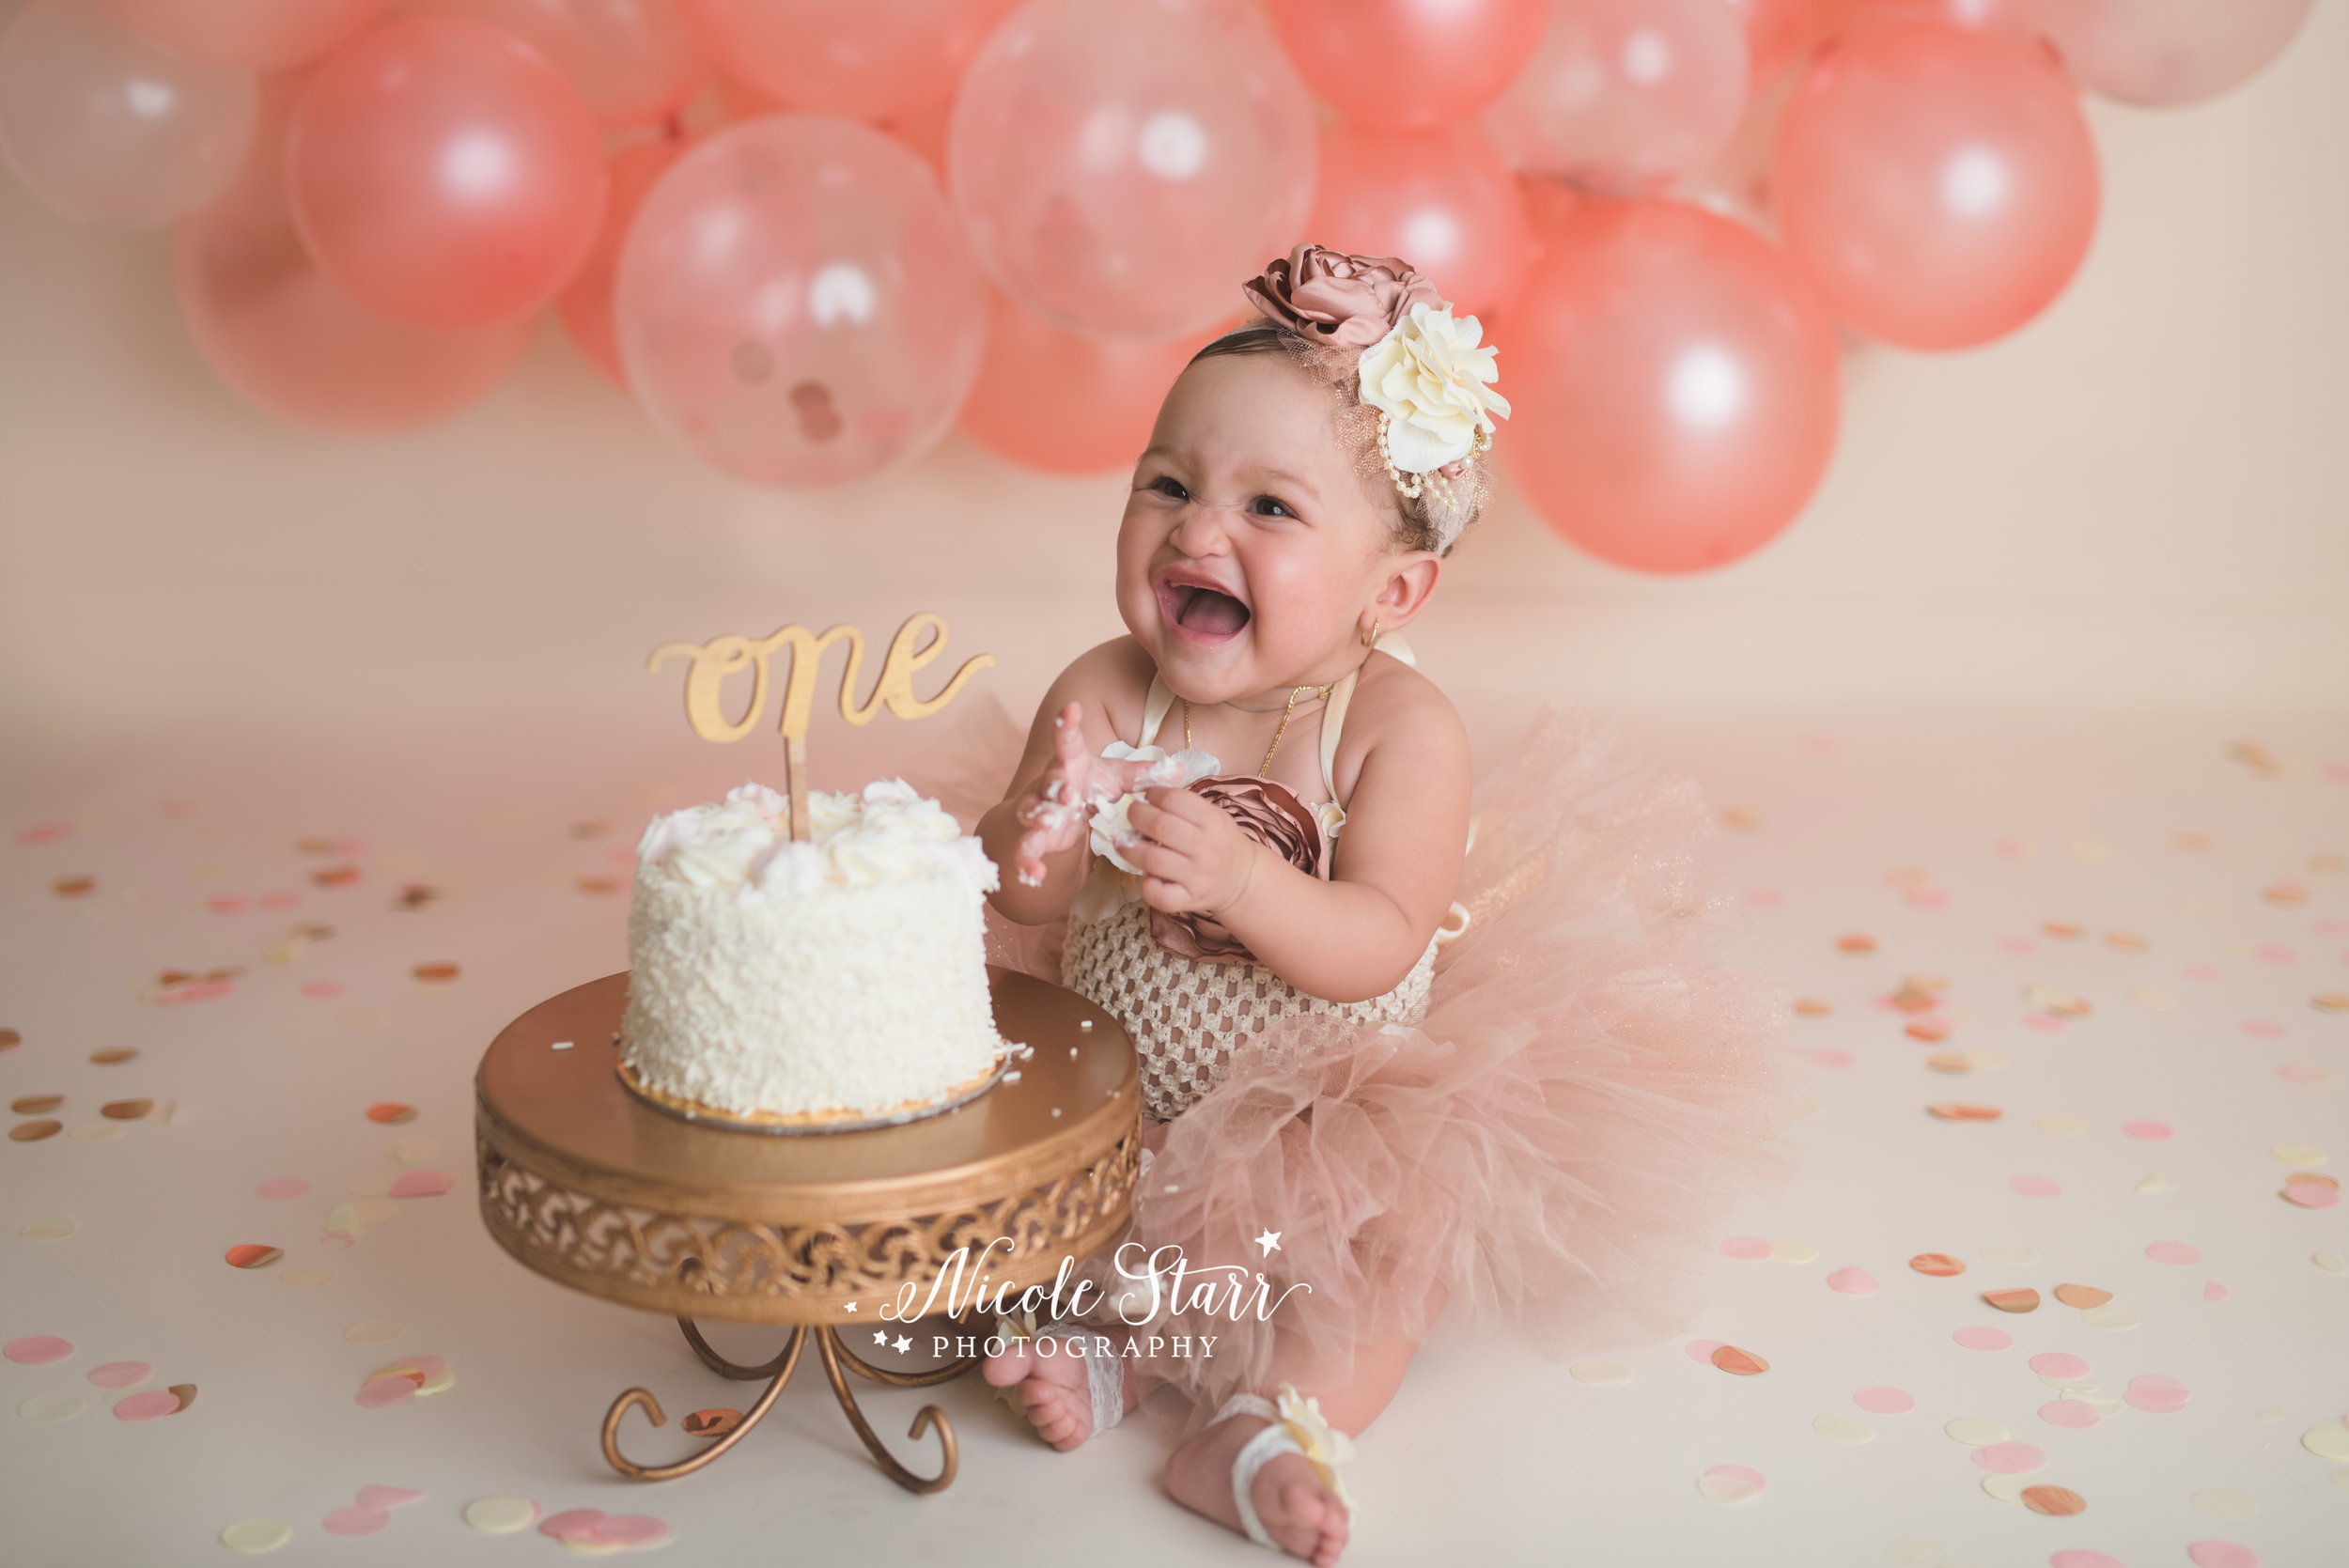 Nicole Starr Photography | Saratoga Springs Cake Smash Photographer | Boston Cake Smash Photographer | Saratoga Springs Family Photographer | Boston Family Photographer